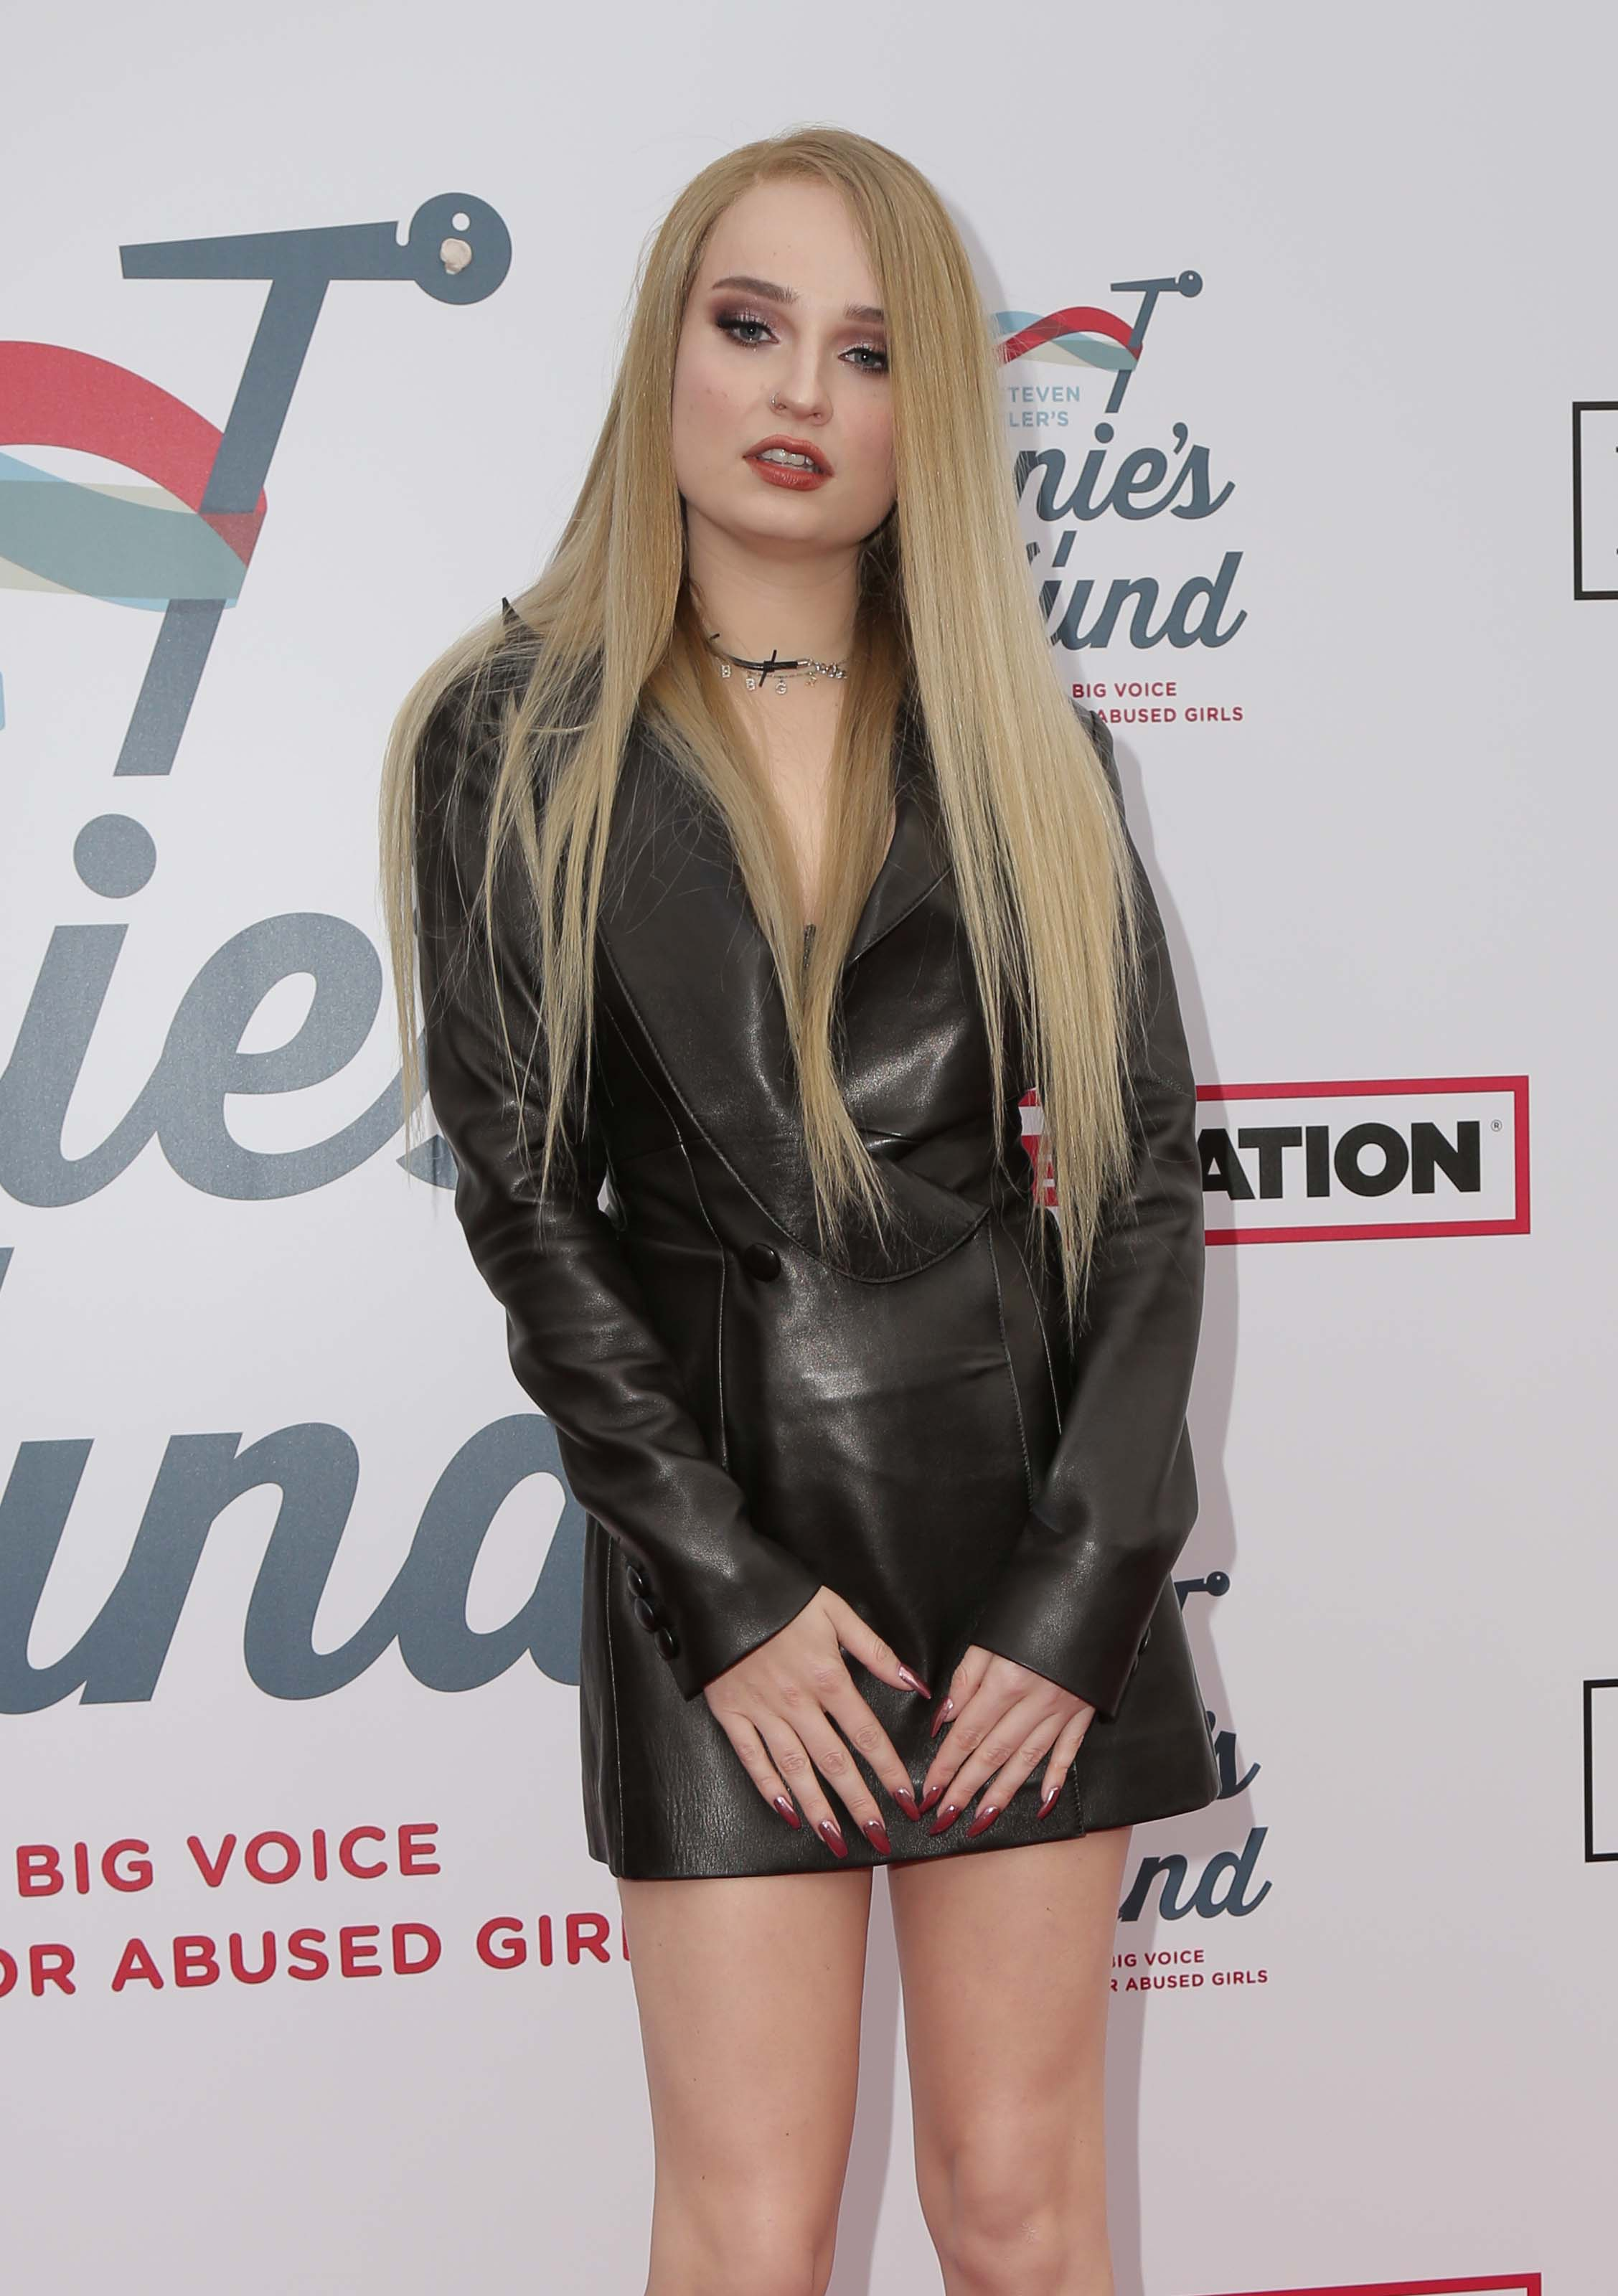 Kim Petras attends Steven Tyler's GRAMMY Awards Viewing Party